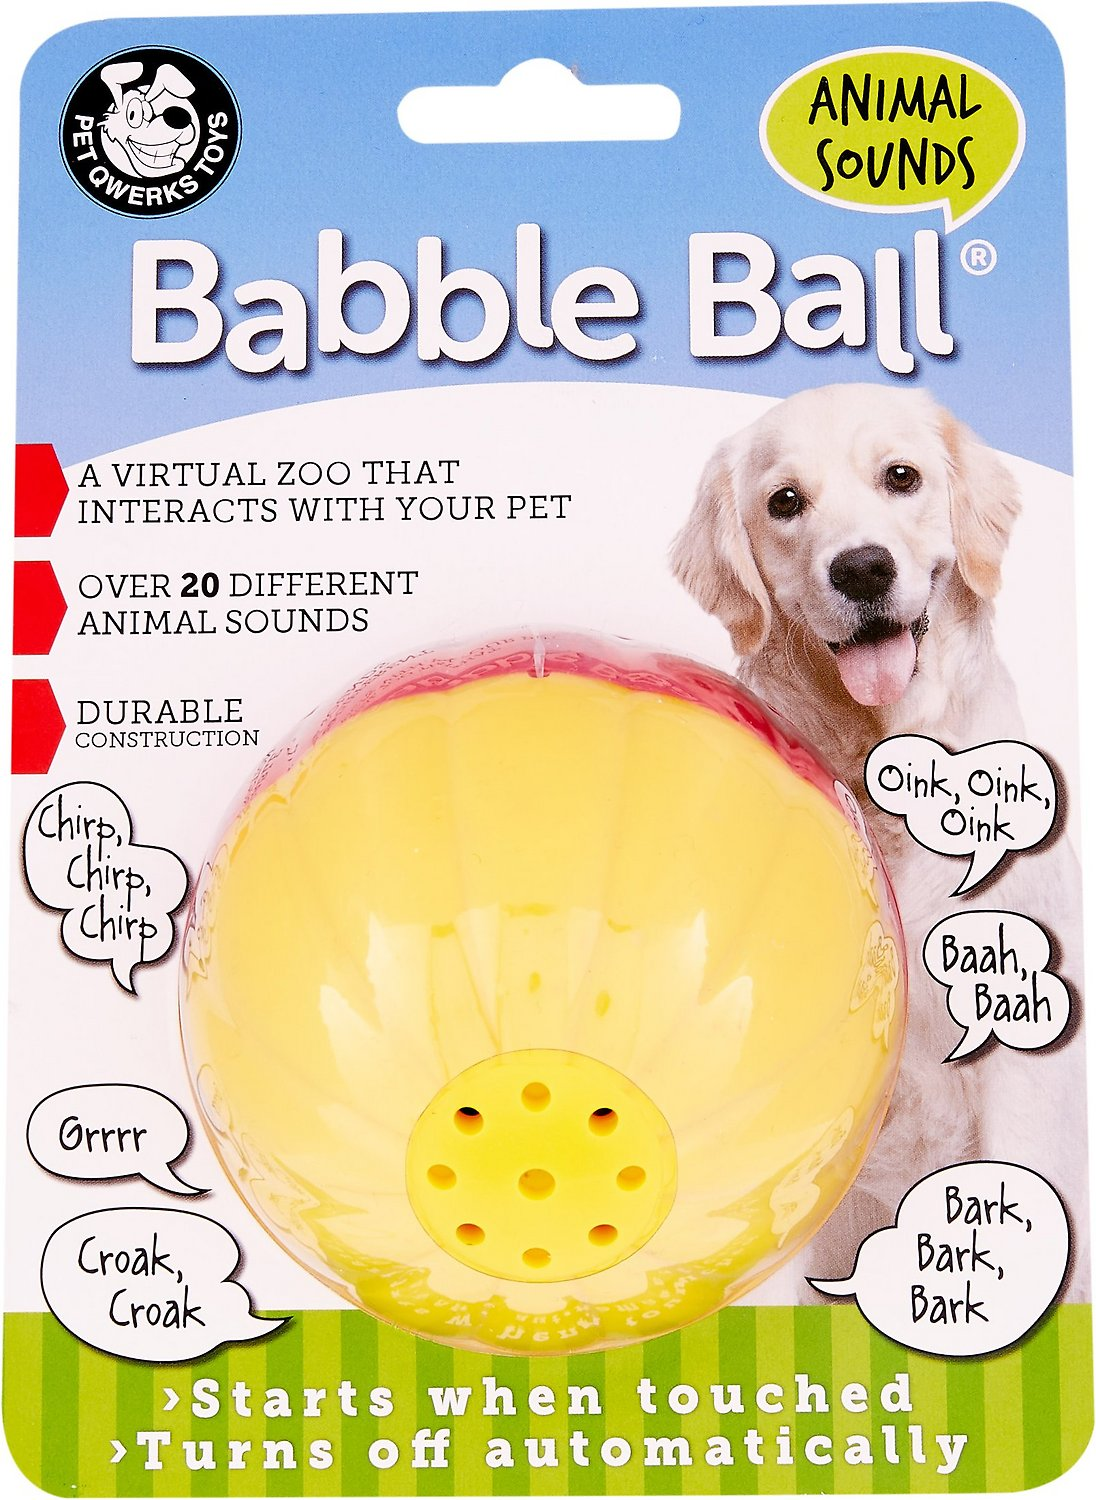 Dog Toys Balls : Pet qwerks animal babble ball dog toy color varies large